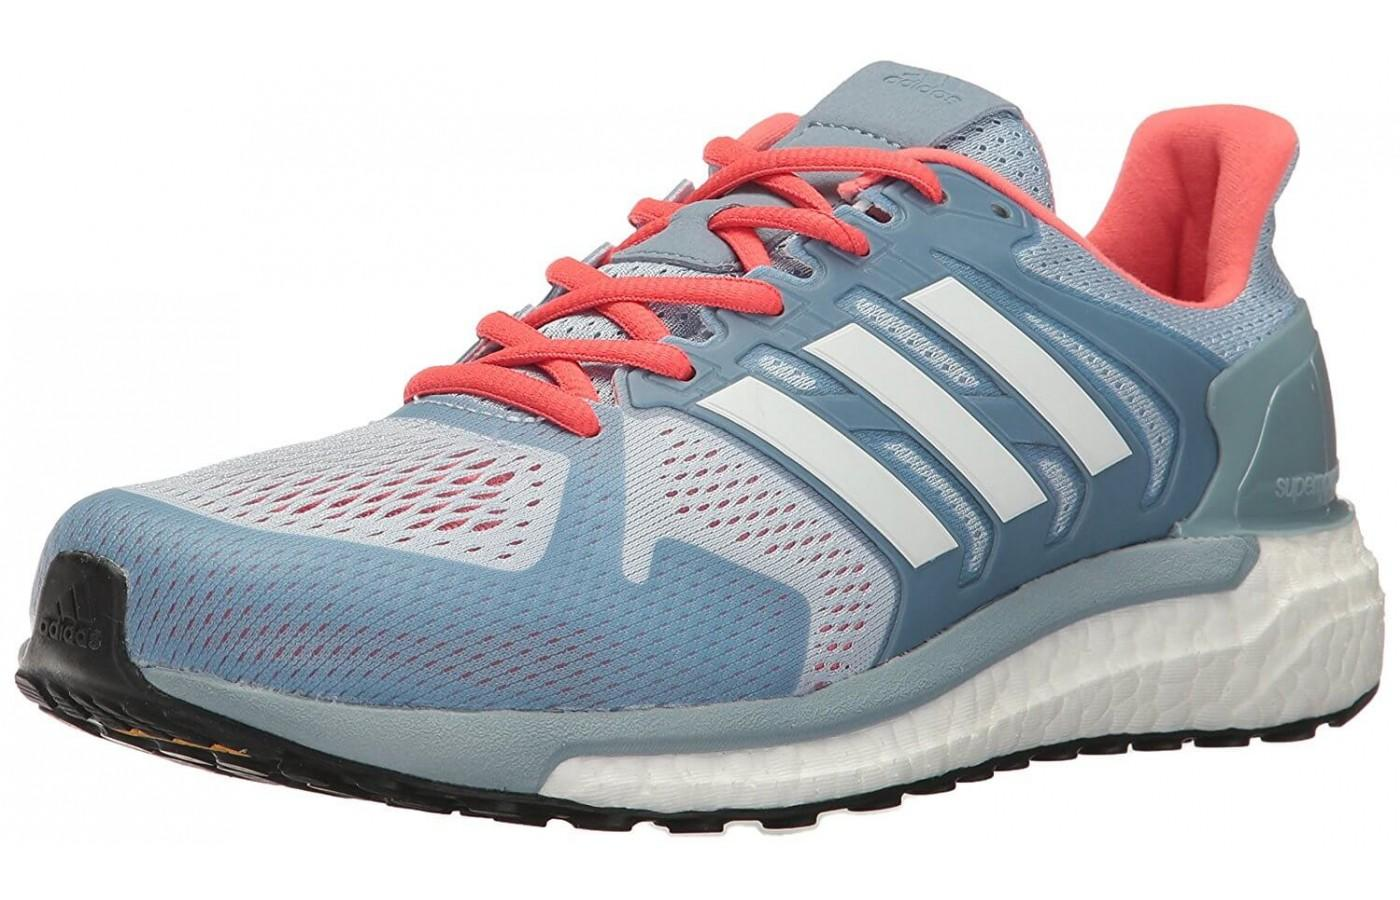 4bff7516be4 The Adidas Supernova ST is a stability shoe that represents a redesign of  the Sequence 9 ...